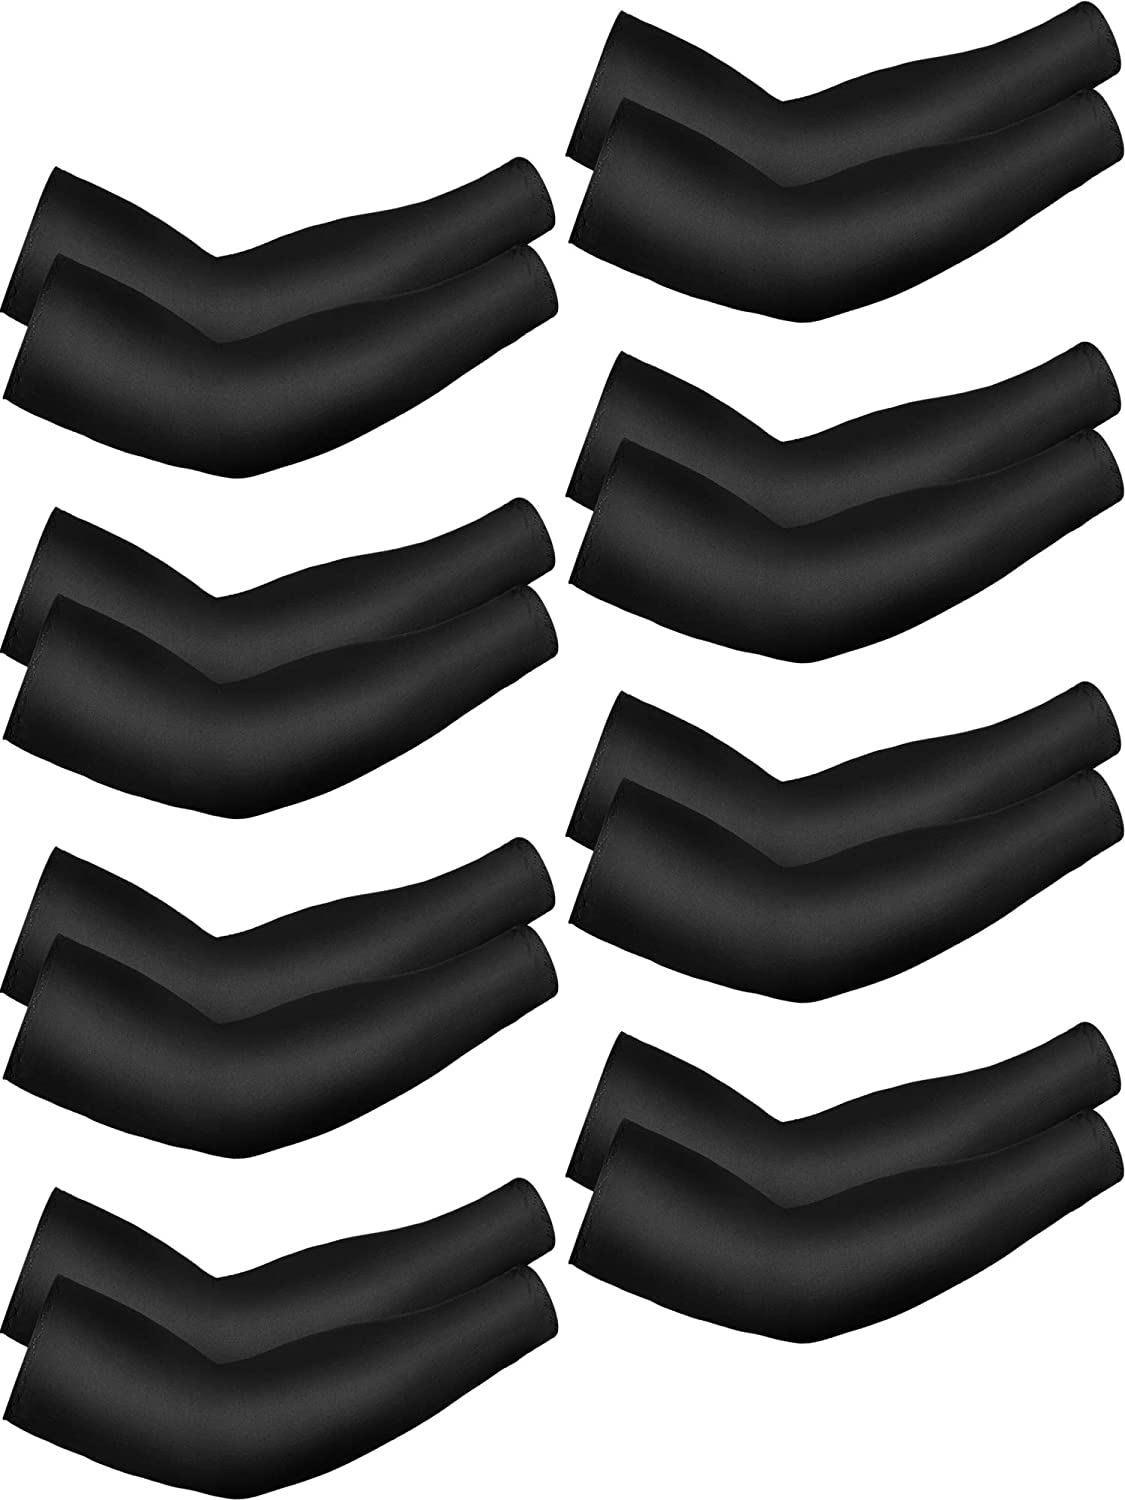 Mudder 8 Pairs Unisex UV Protection Arm Cooling Sleeves Ice Silk Arm Cover (Black, Enlarged Size)